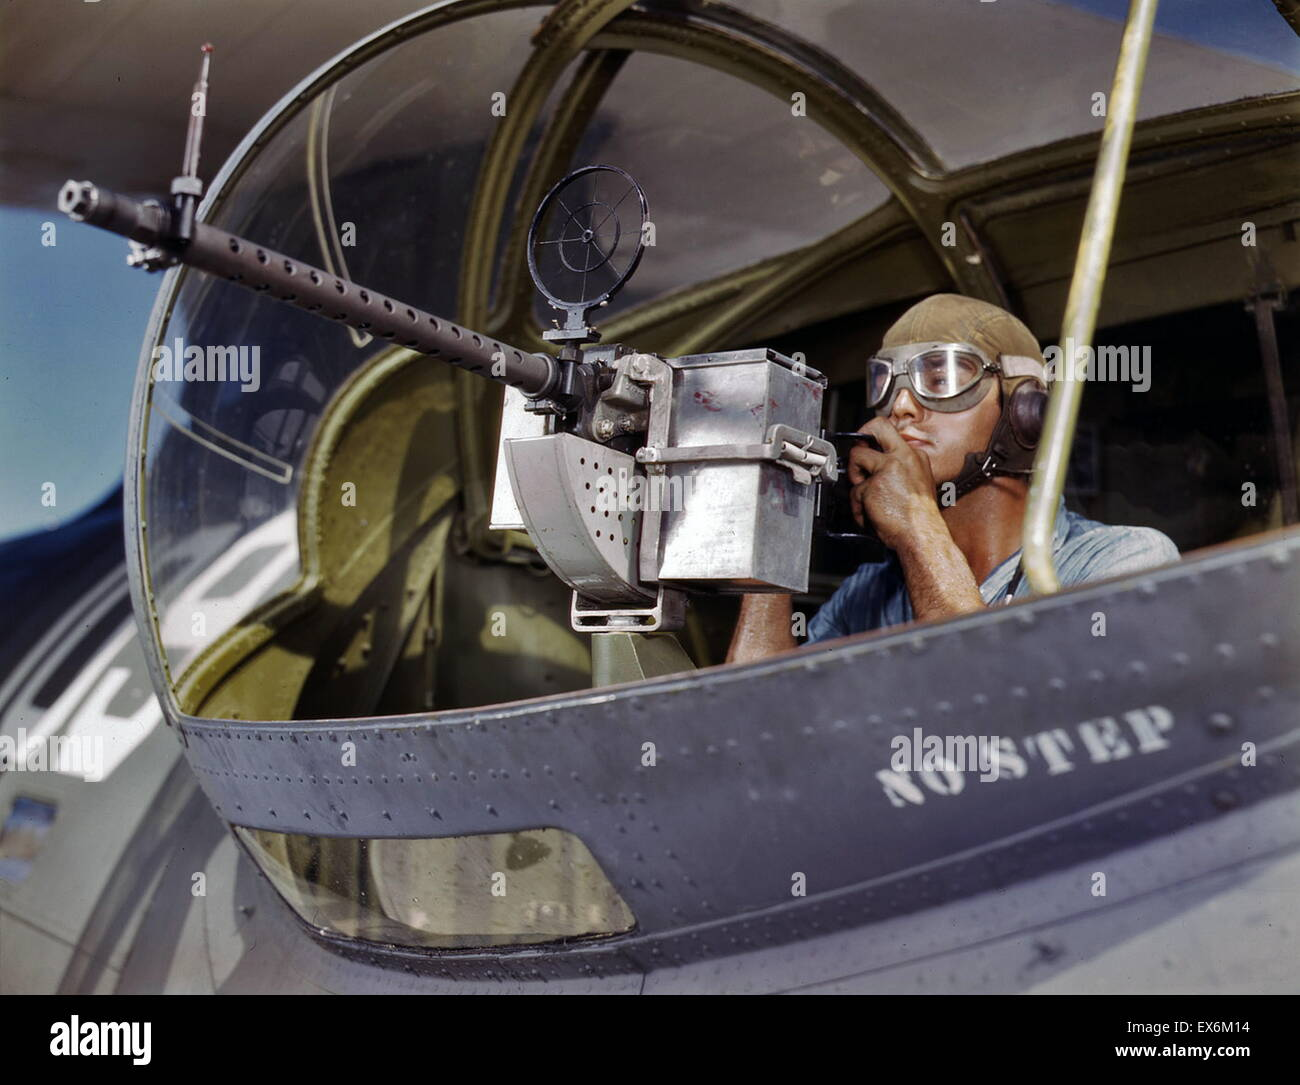 African American world war two airman, posing with a M1919 Browning machine gun next to a PBY Catalina aircraft - Stock Image